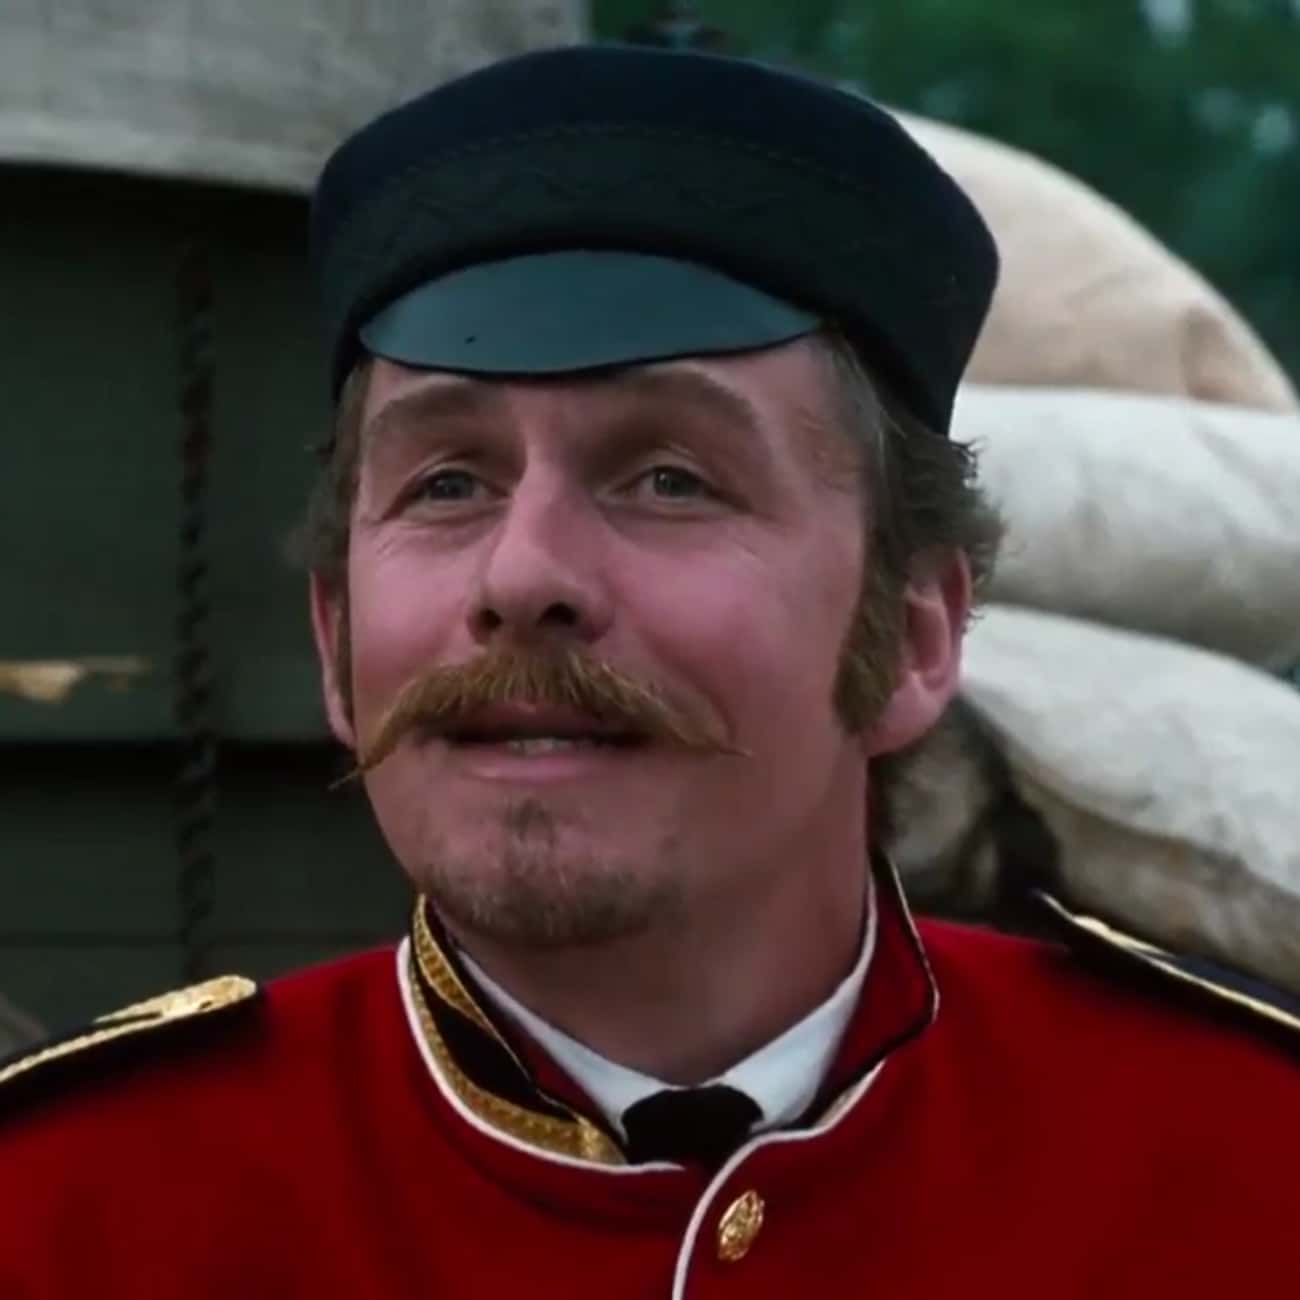 I Assure You is listed (or ranked) 4 on the list The Best Gettysburg Movie Quotes